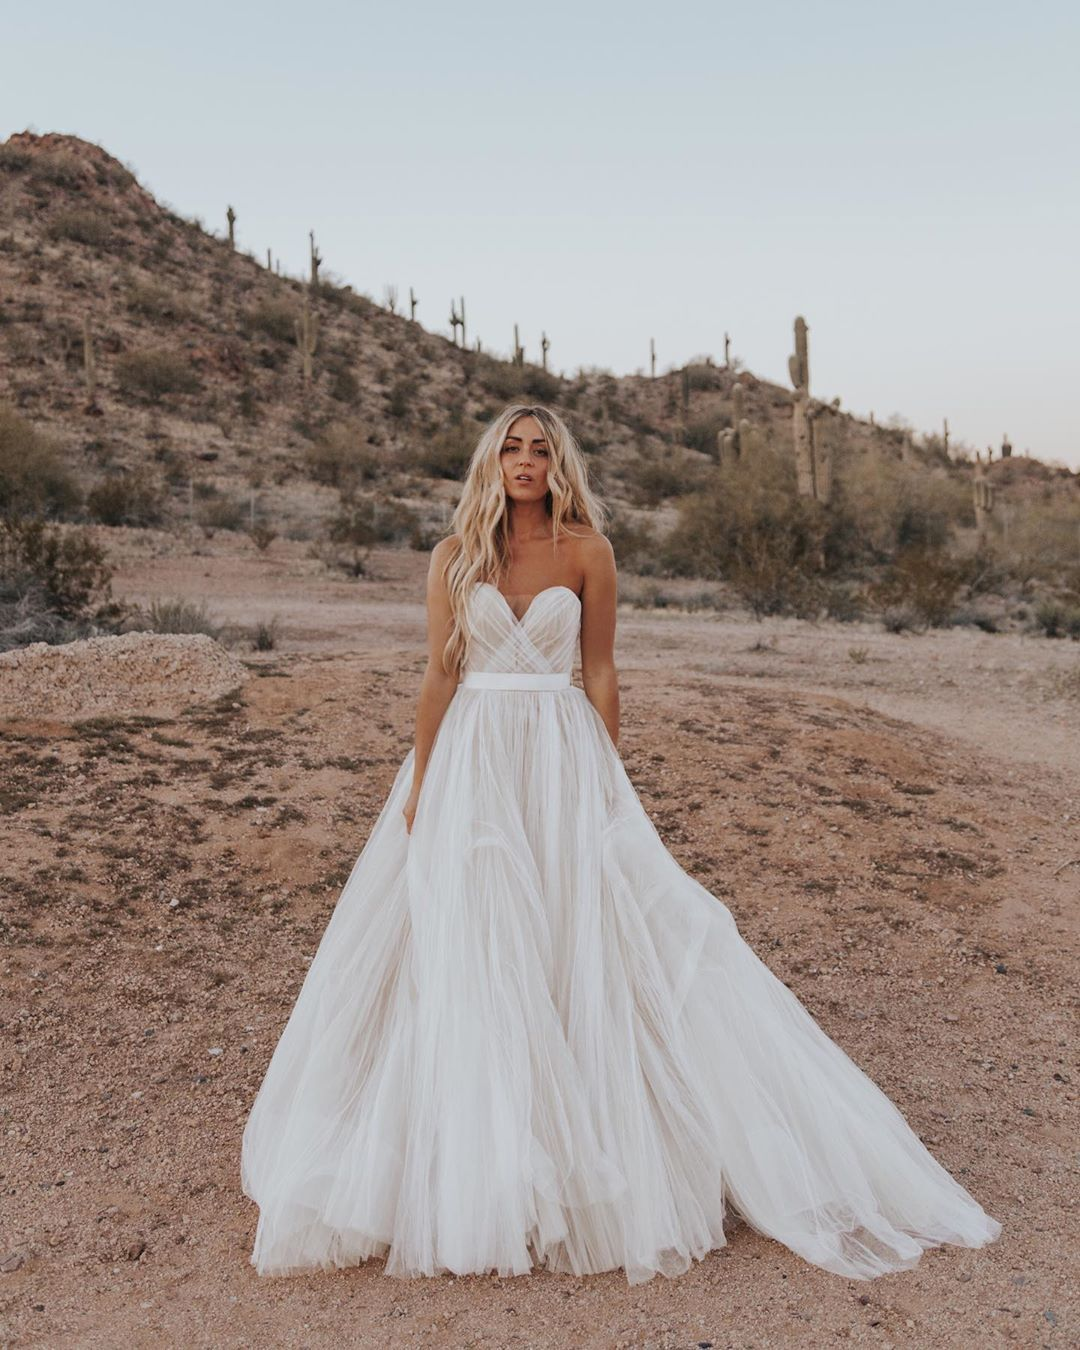 Cara Jourdan S Instagram Post All Of The Love Photos By Paigeowenphoto Wearing Bhldn Edited With In 2020 Beautiful Wedding Dresses Dream Wedding Dresses Bride